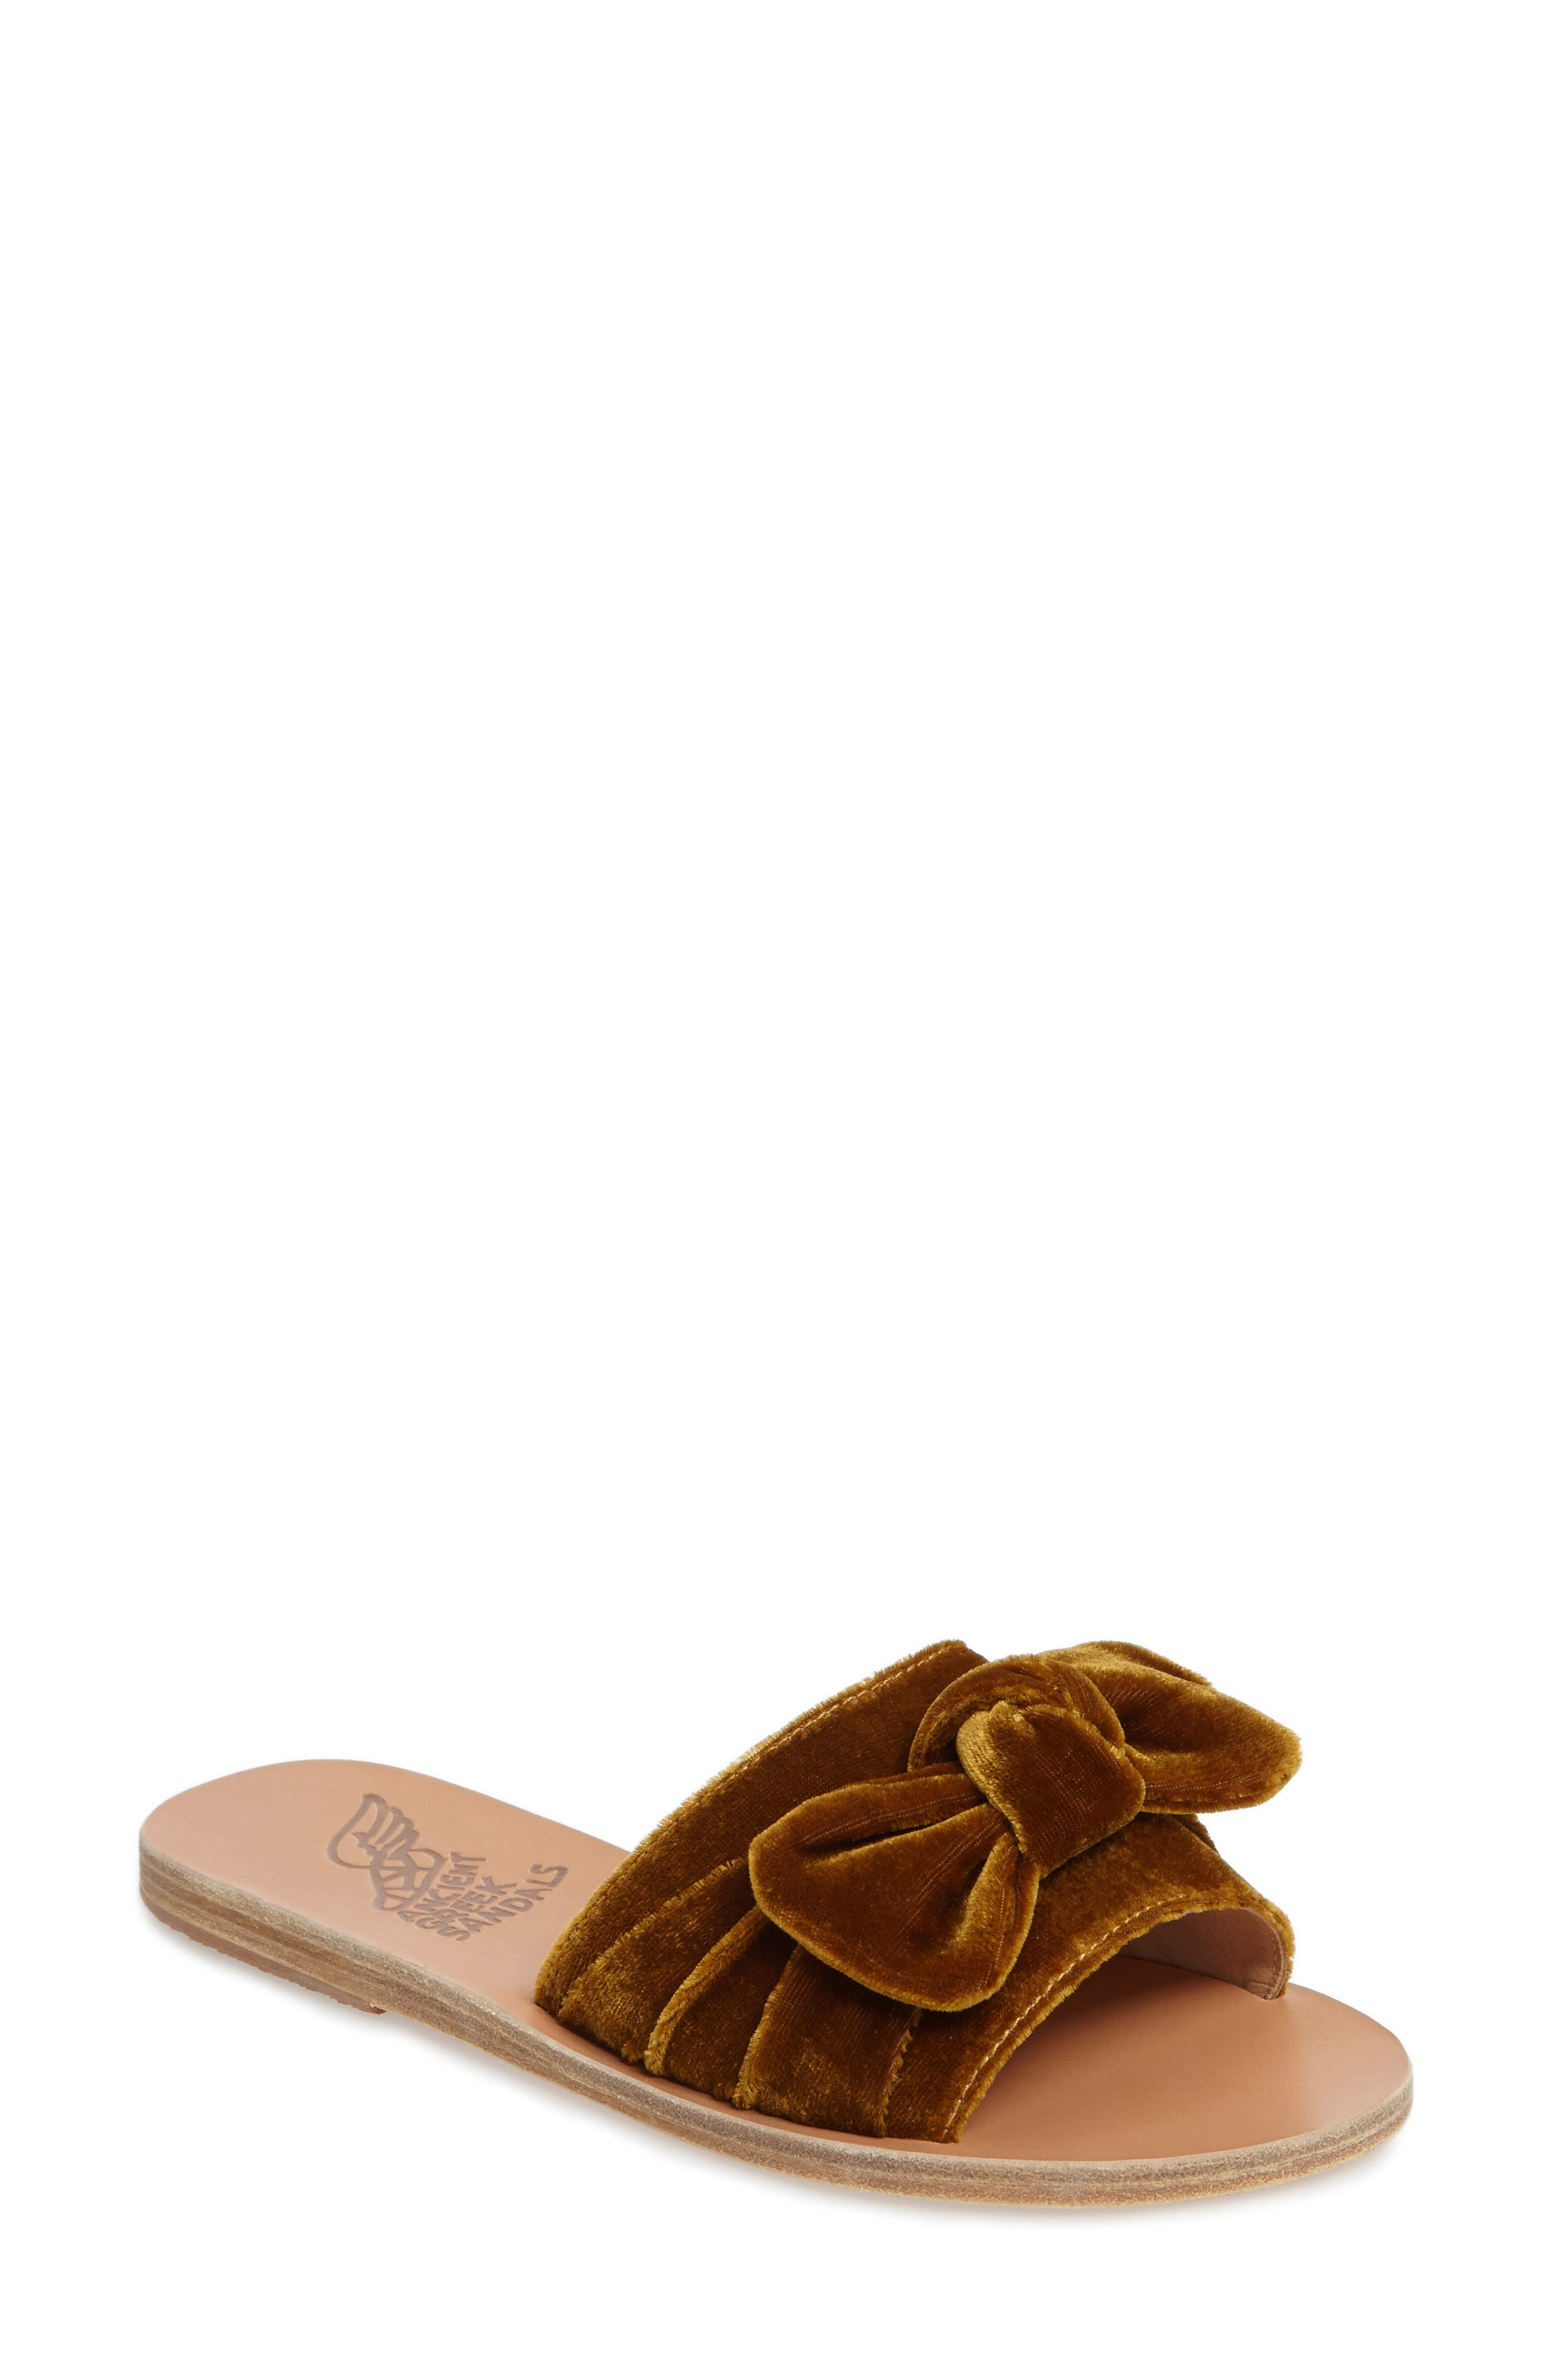 Main Image - Ancient Greek Sandals Taygete Bow Slide Sandal (Women)